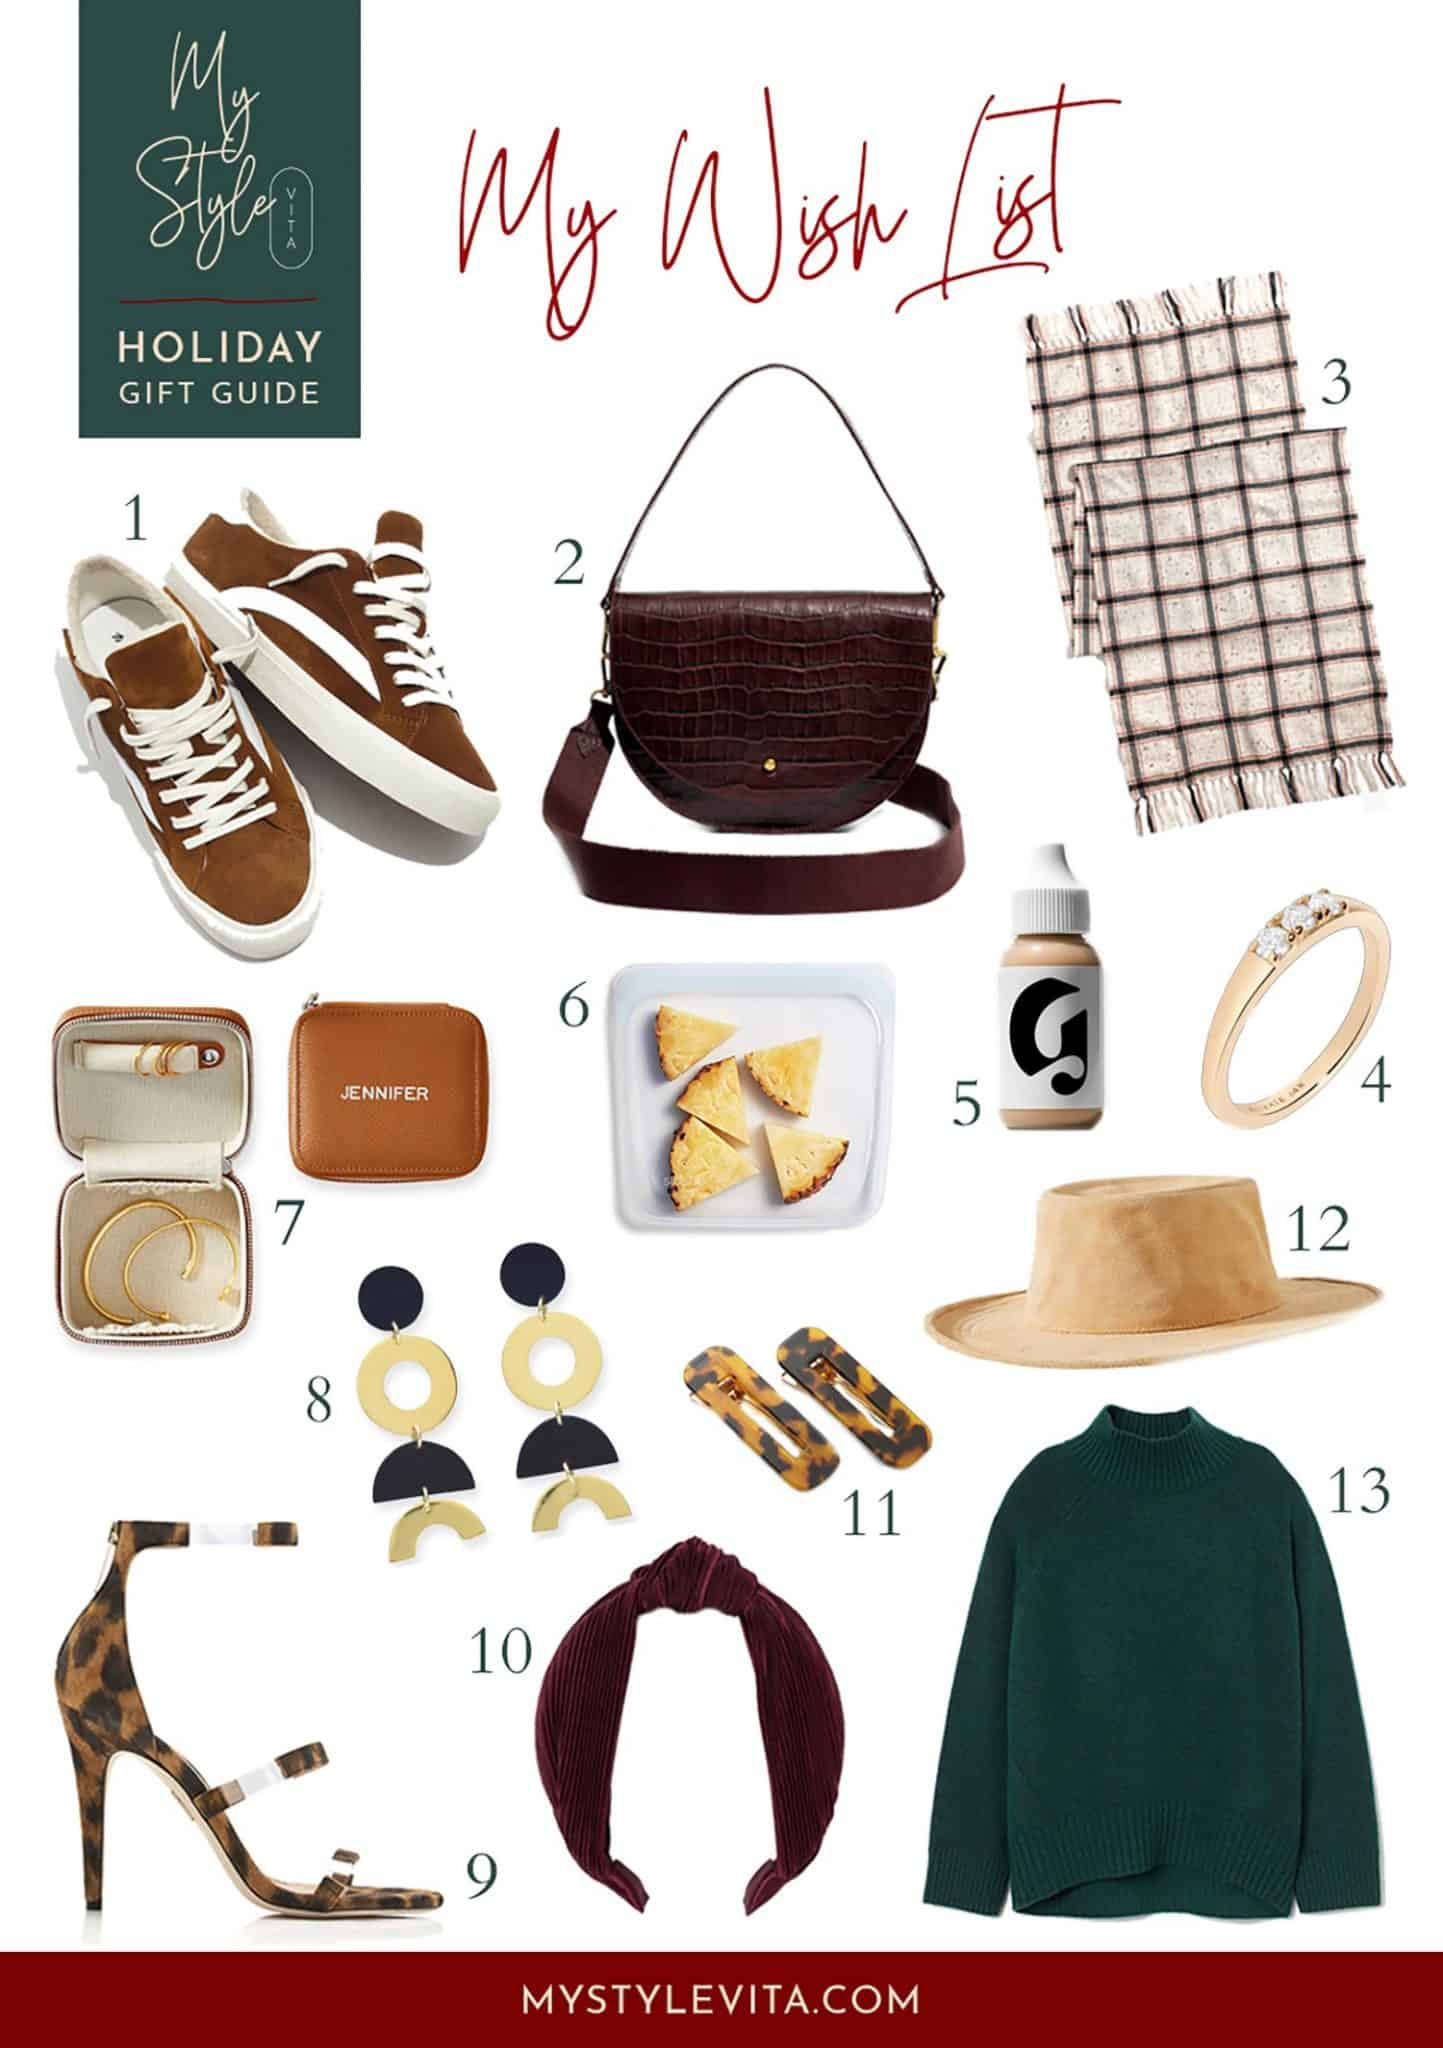 Holiday Gift Guides - wish list